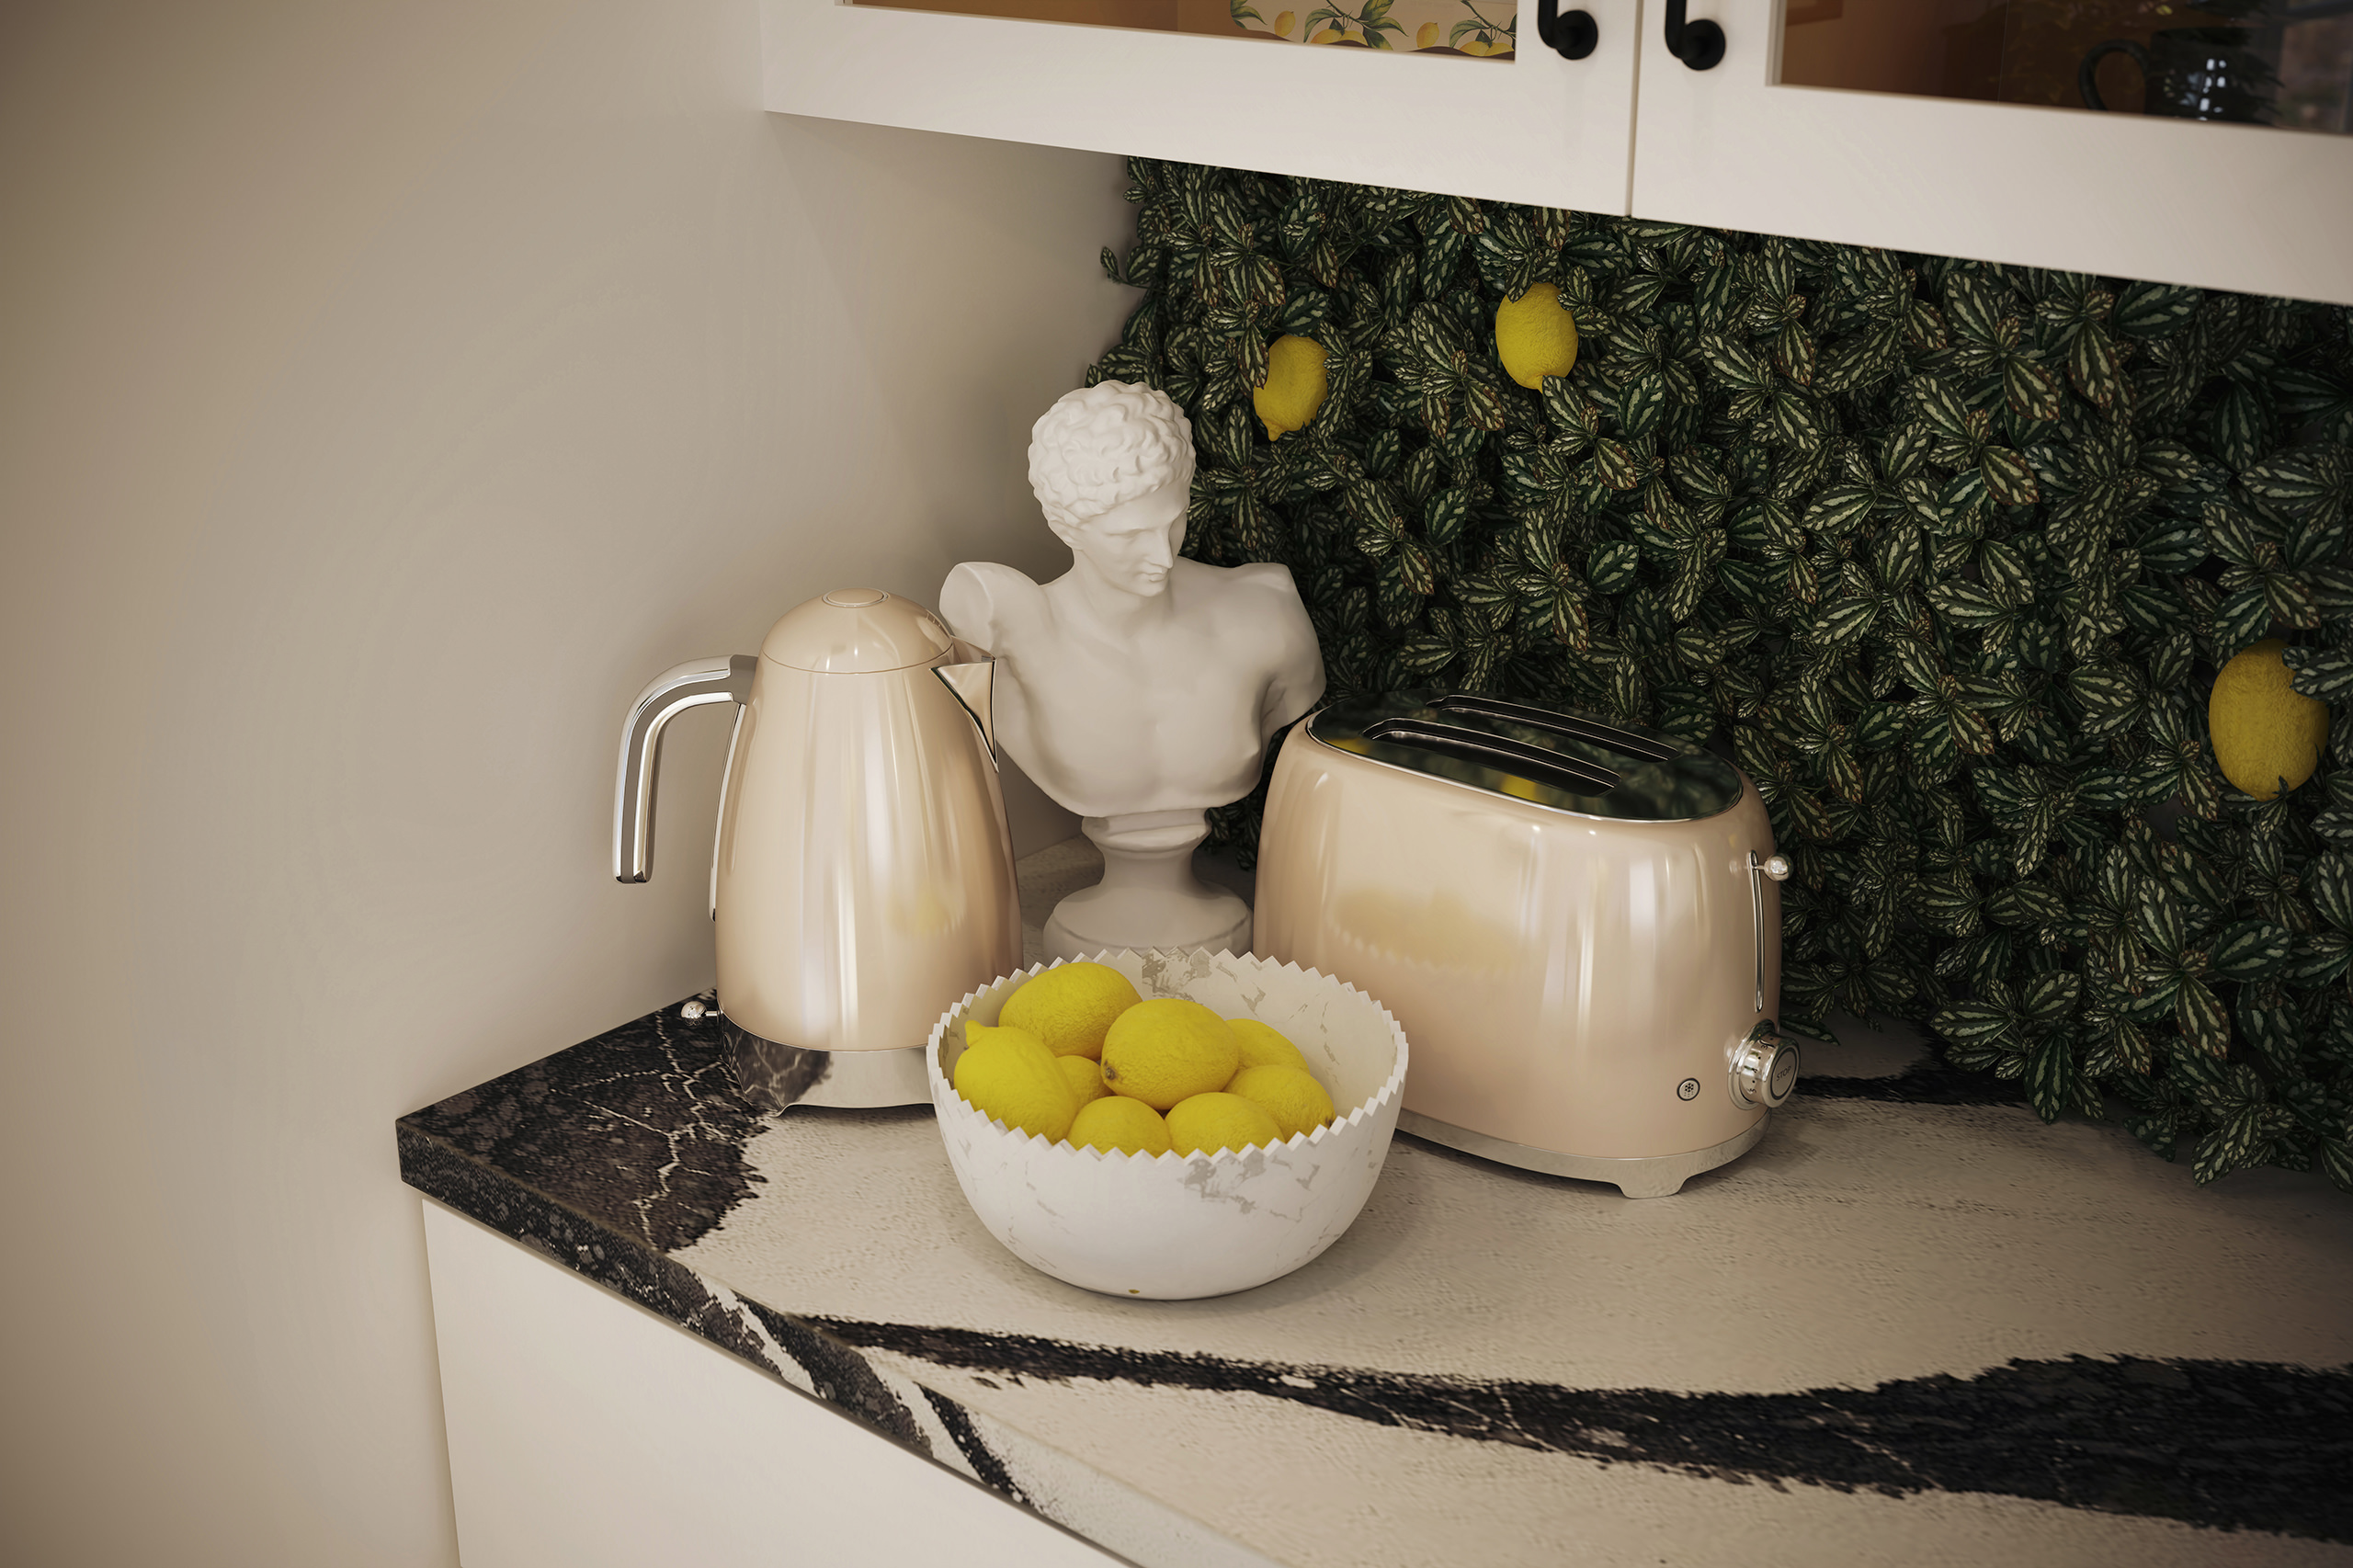 Close-up 3D view of a white bowl with lemons, antique torso statue and sleek kitchen appliances near the greem wall